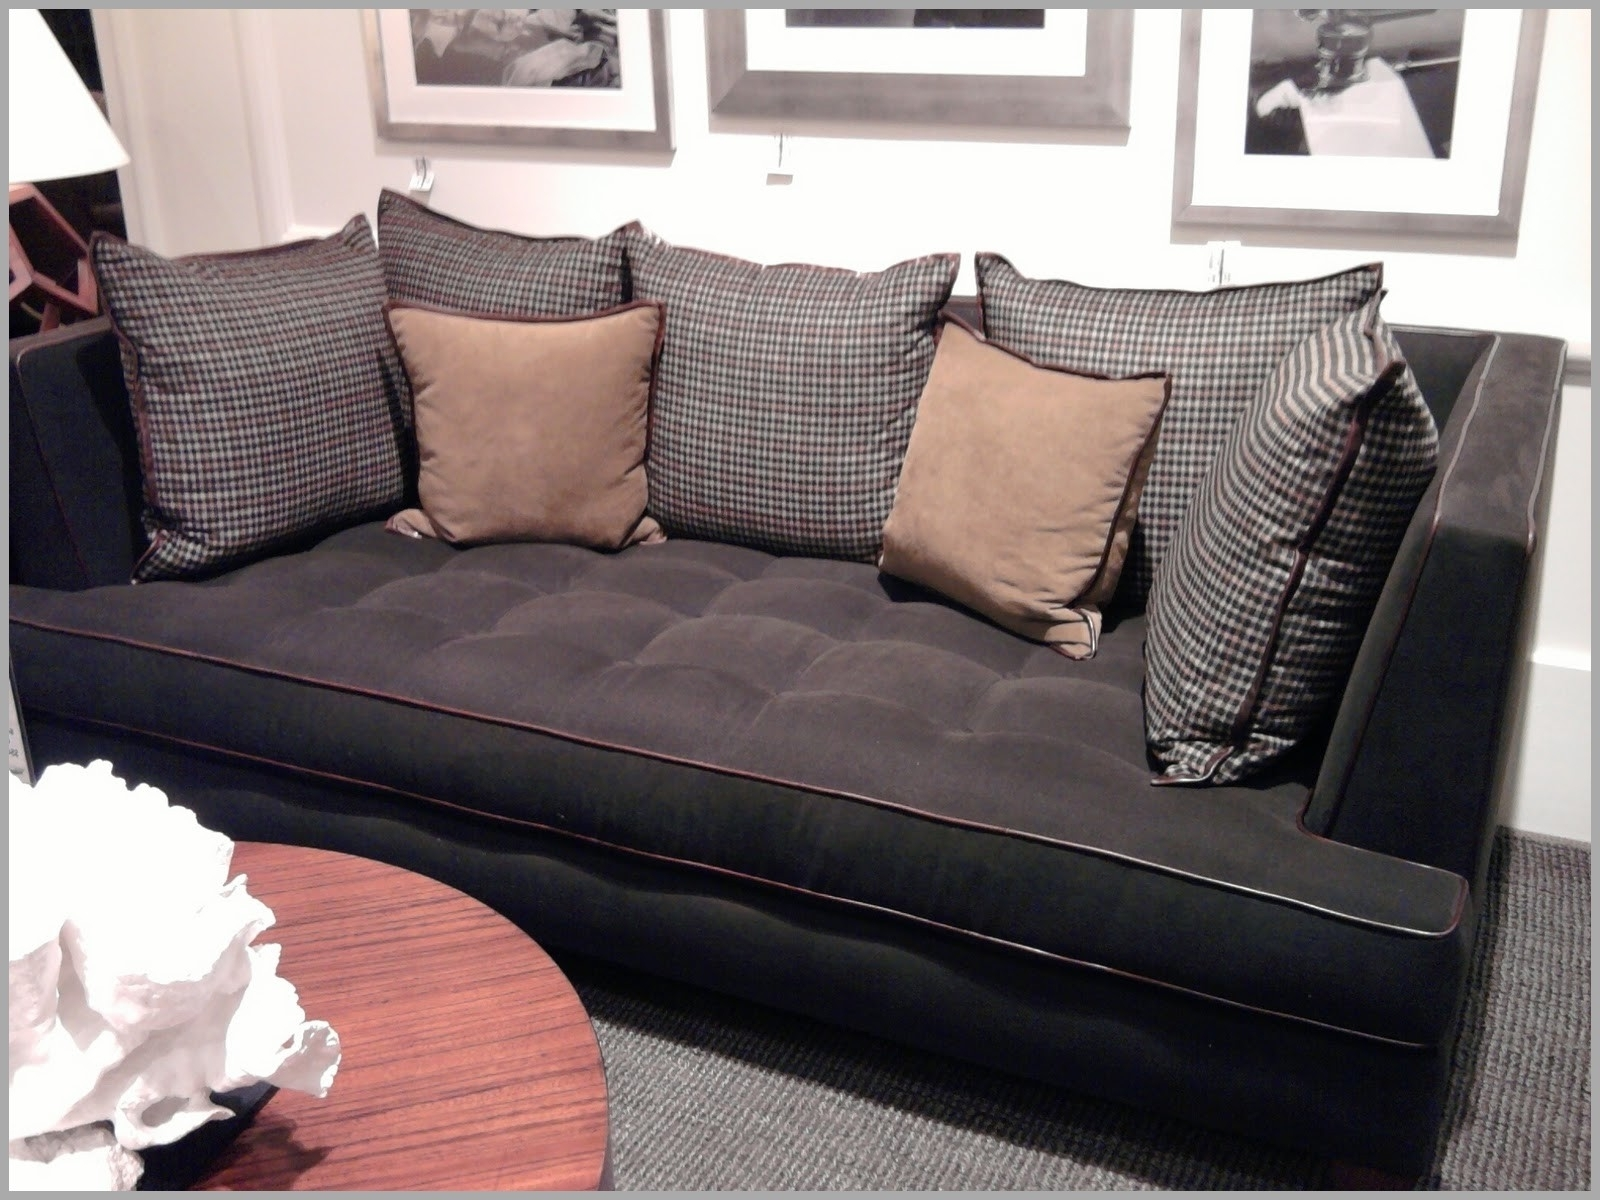 2018 Sofas : Curved Sectional Sofa Modern Sofa Deep Cushion Couch With Regard To Deep Cushion Sofas (View 1 of 15)